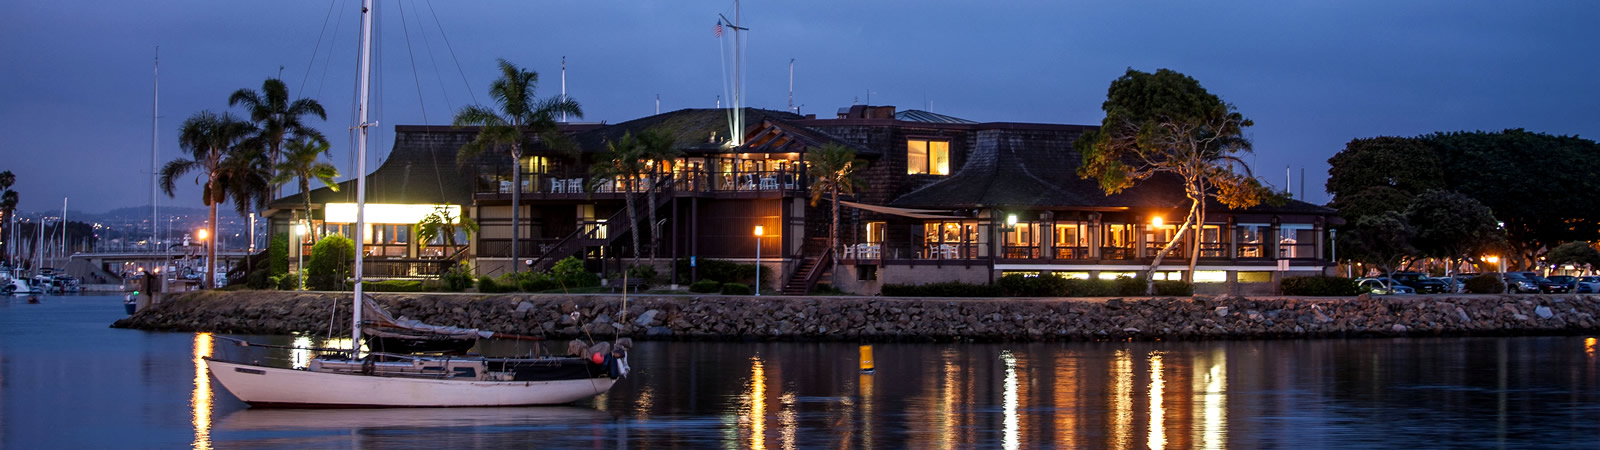 Dana Point Yacht Club Wedding Catering Corporate Events